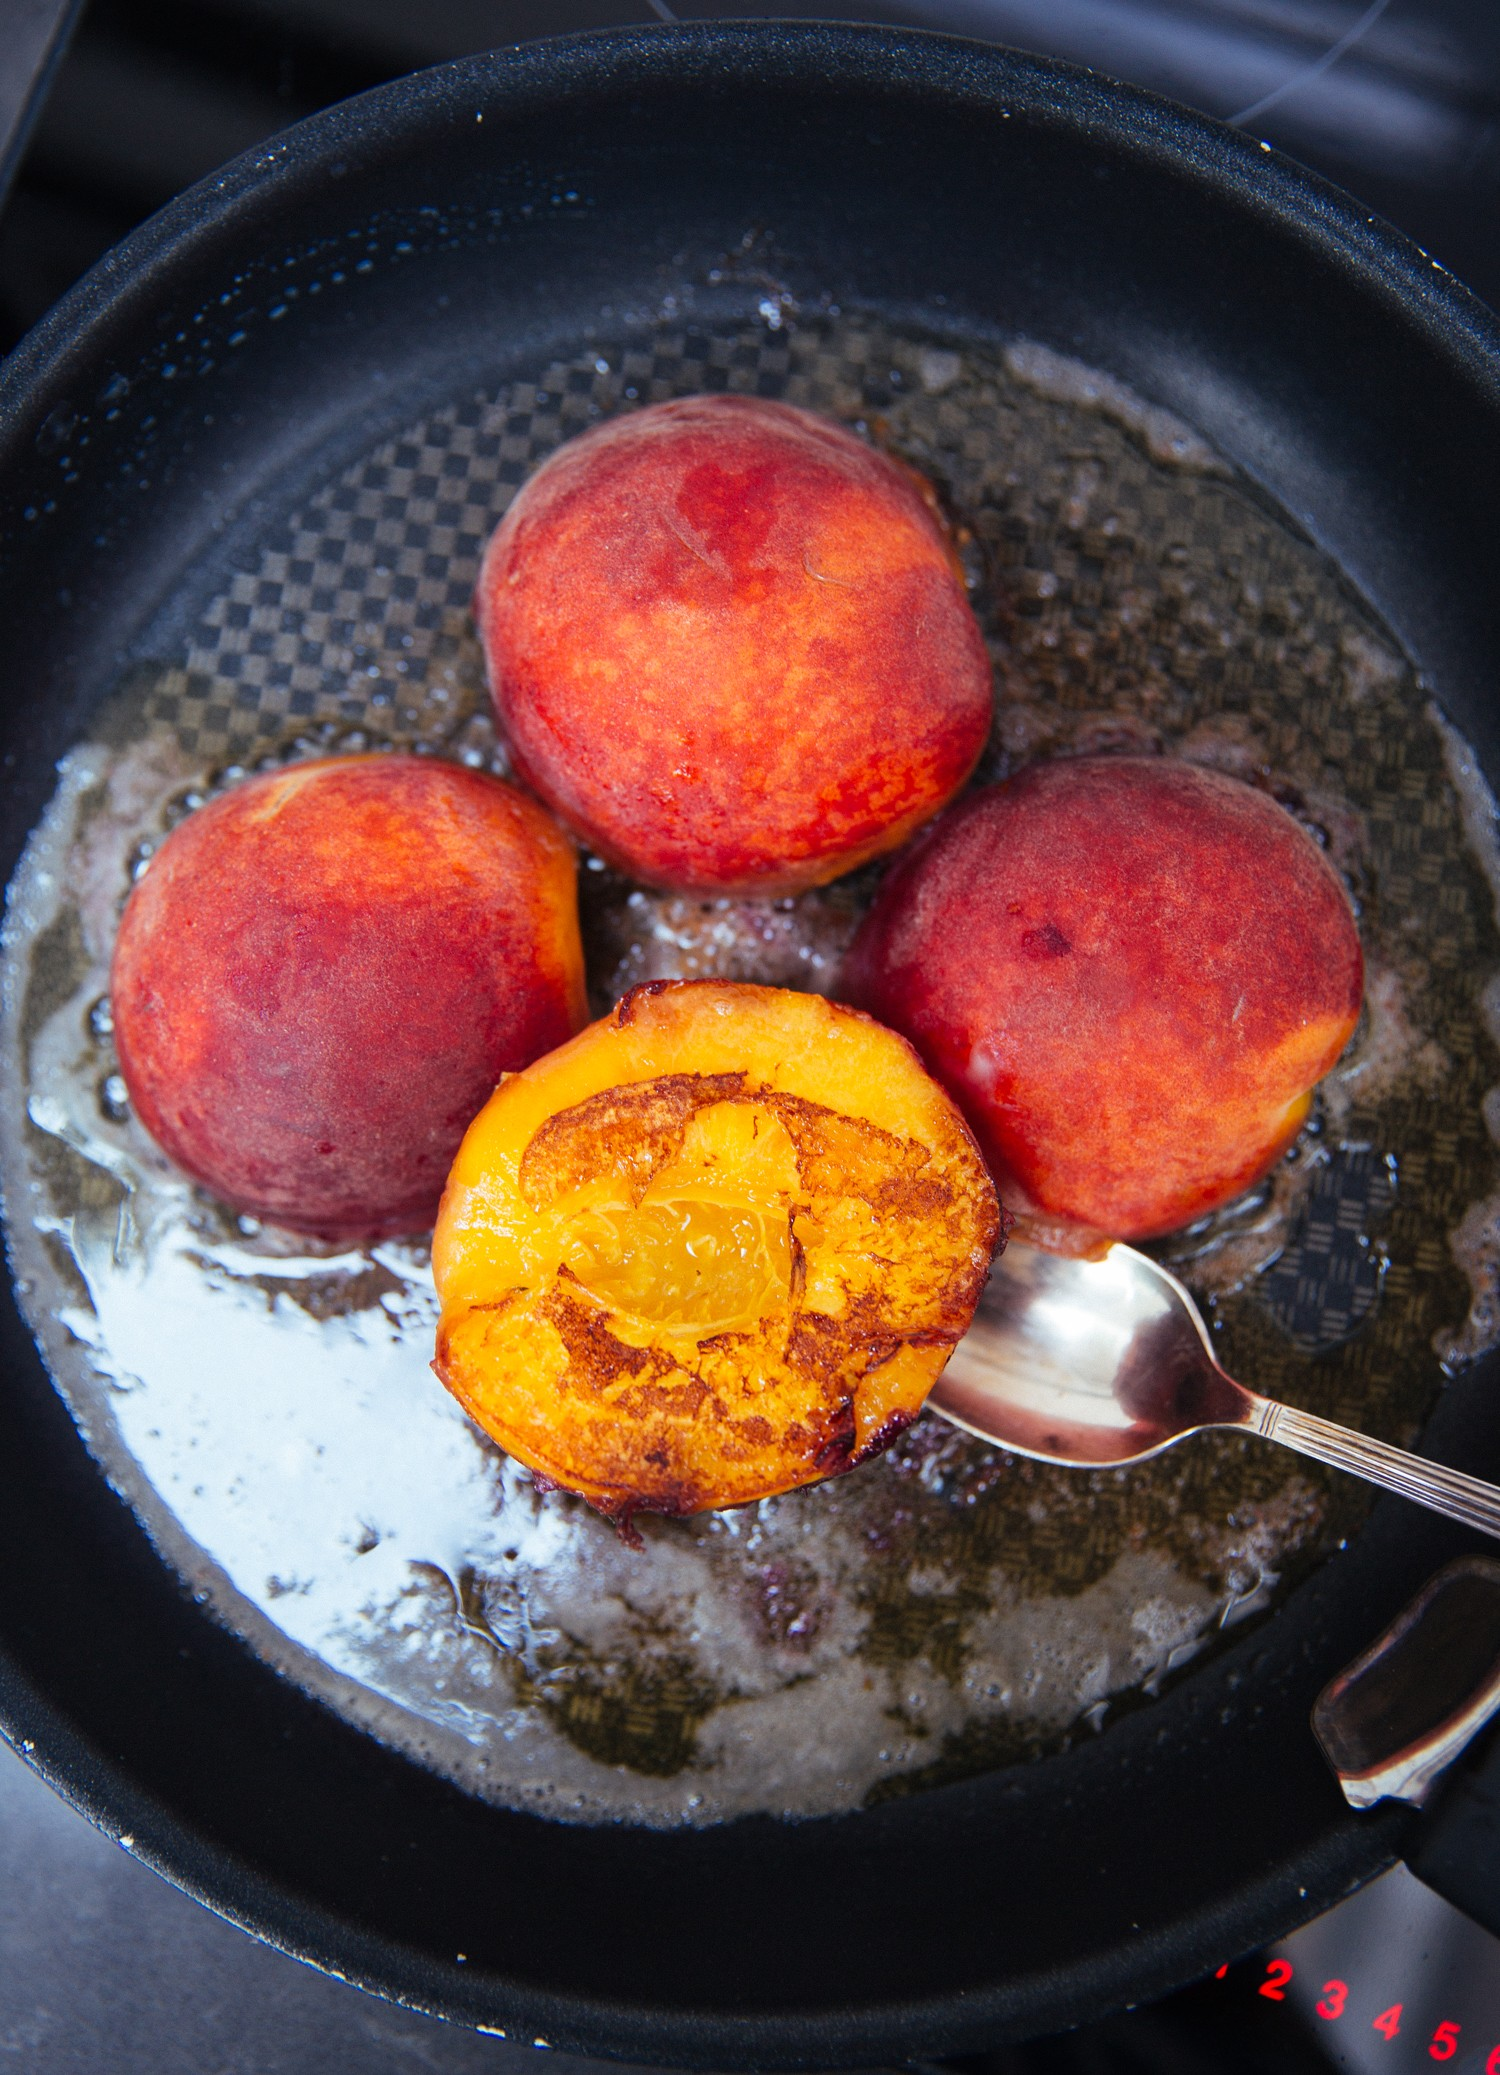 Frying peaches